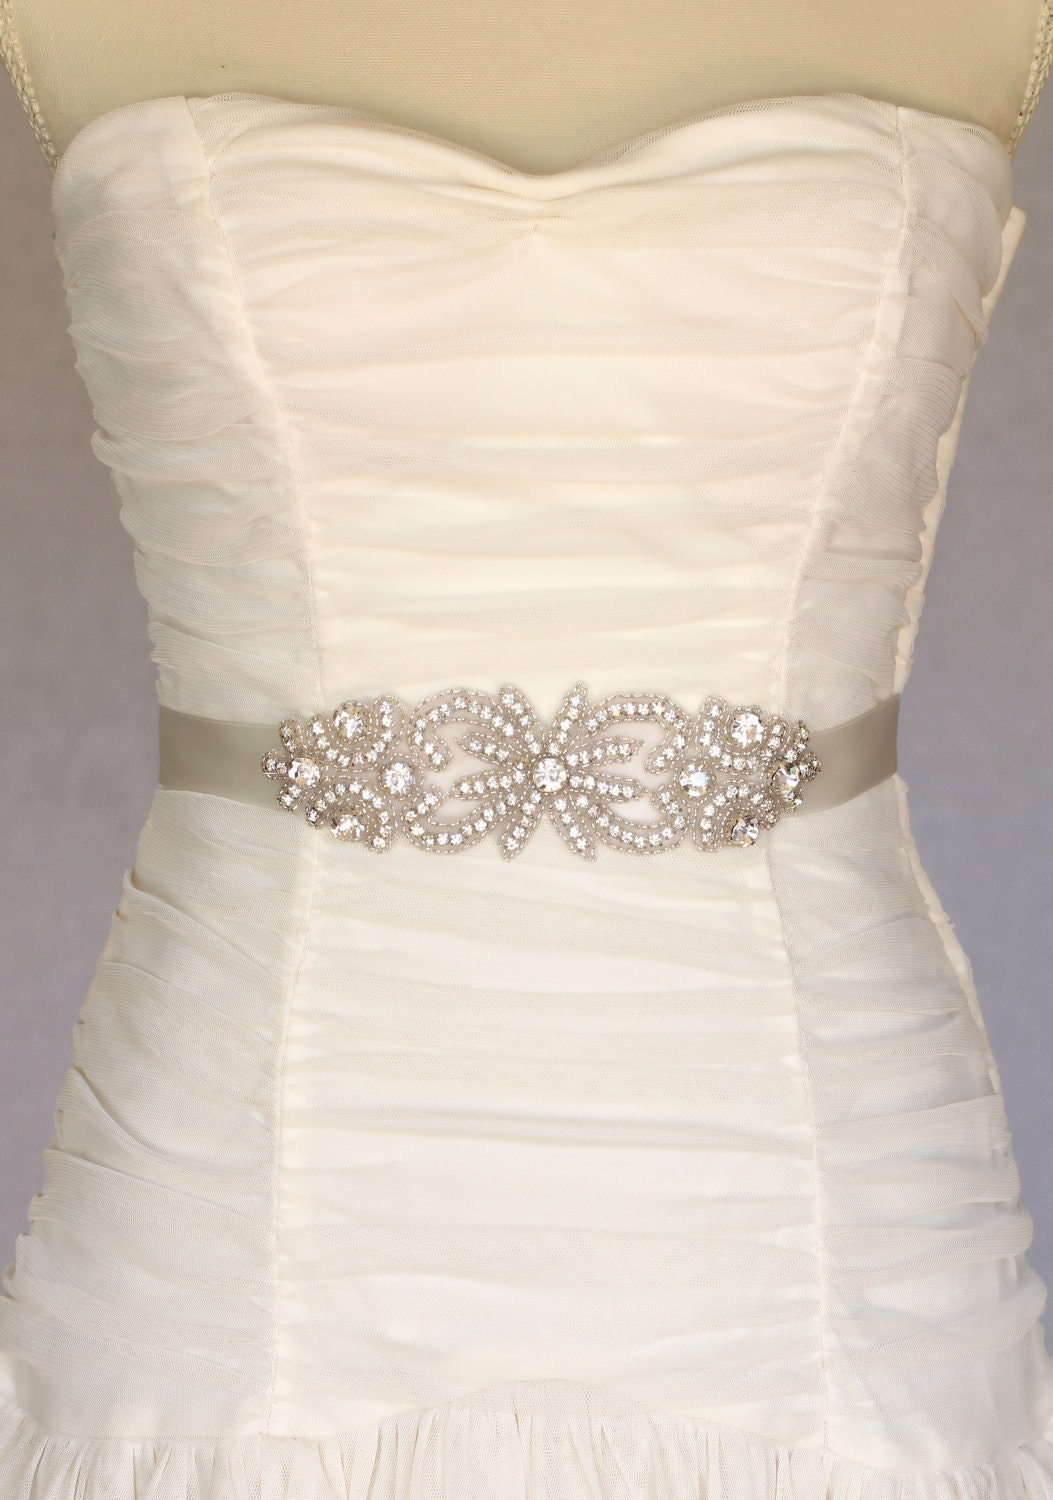 Bella bridal sash bridal belt wedding dress by amienoeldesigns for Wedding dress belt sash